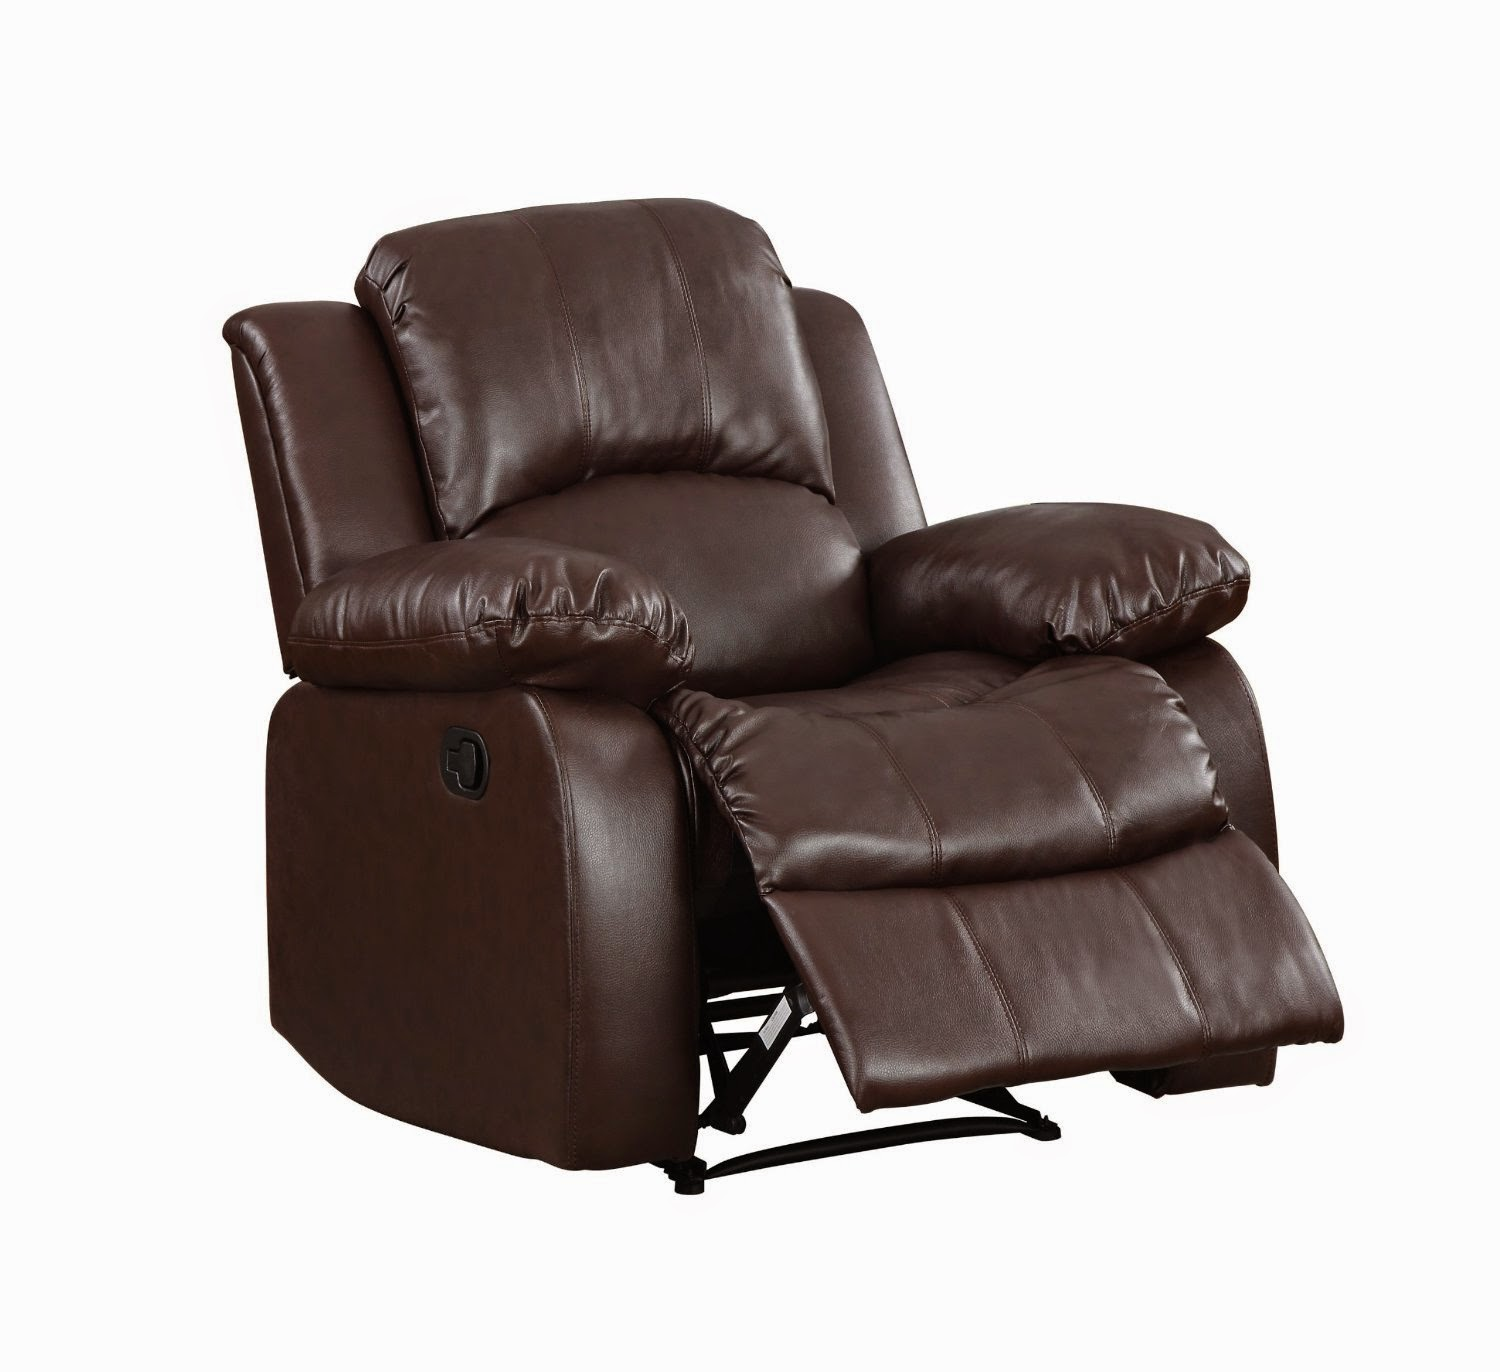 Cheap Recliner Sofas For Sale Black Leather Reclining: Cheap Reclining Sofas Sale: Leather Reclining Sofa Costco